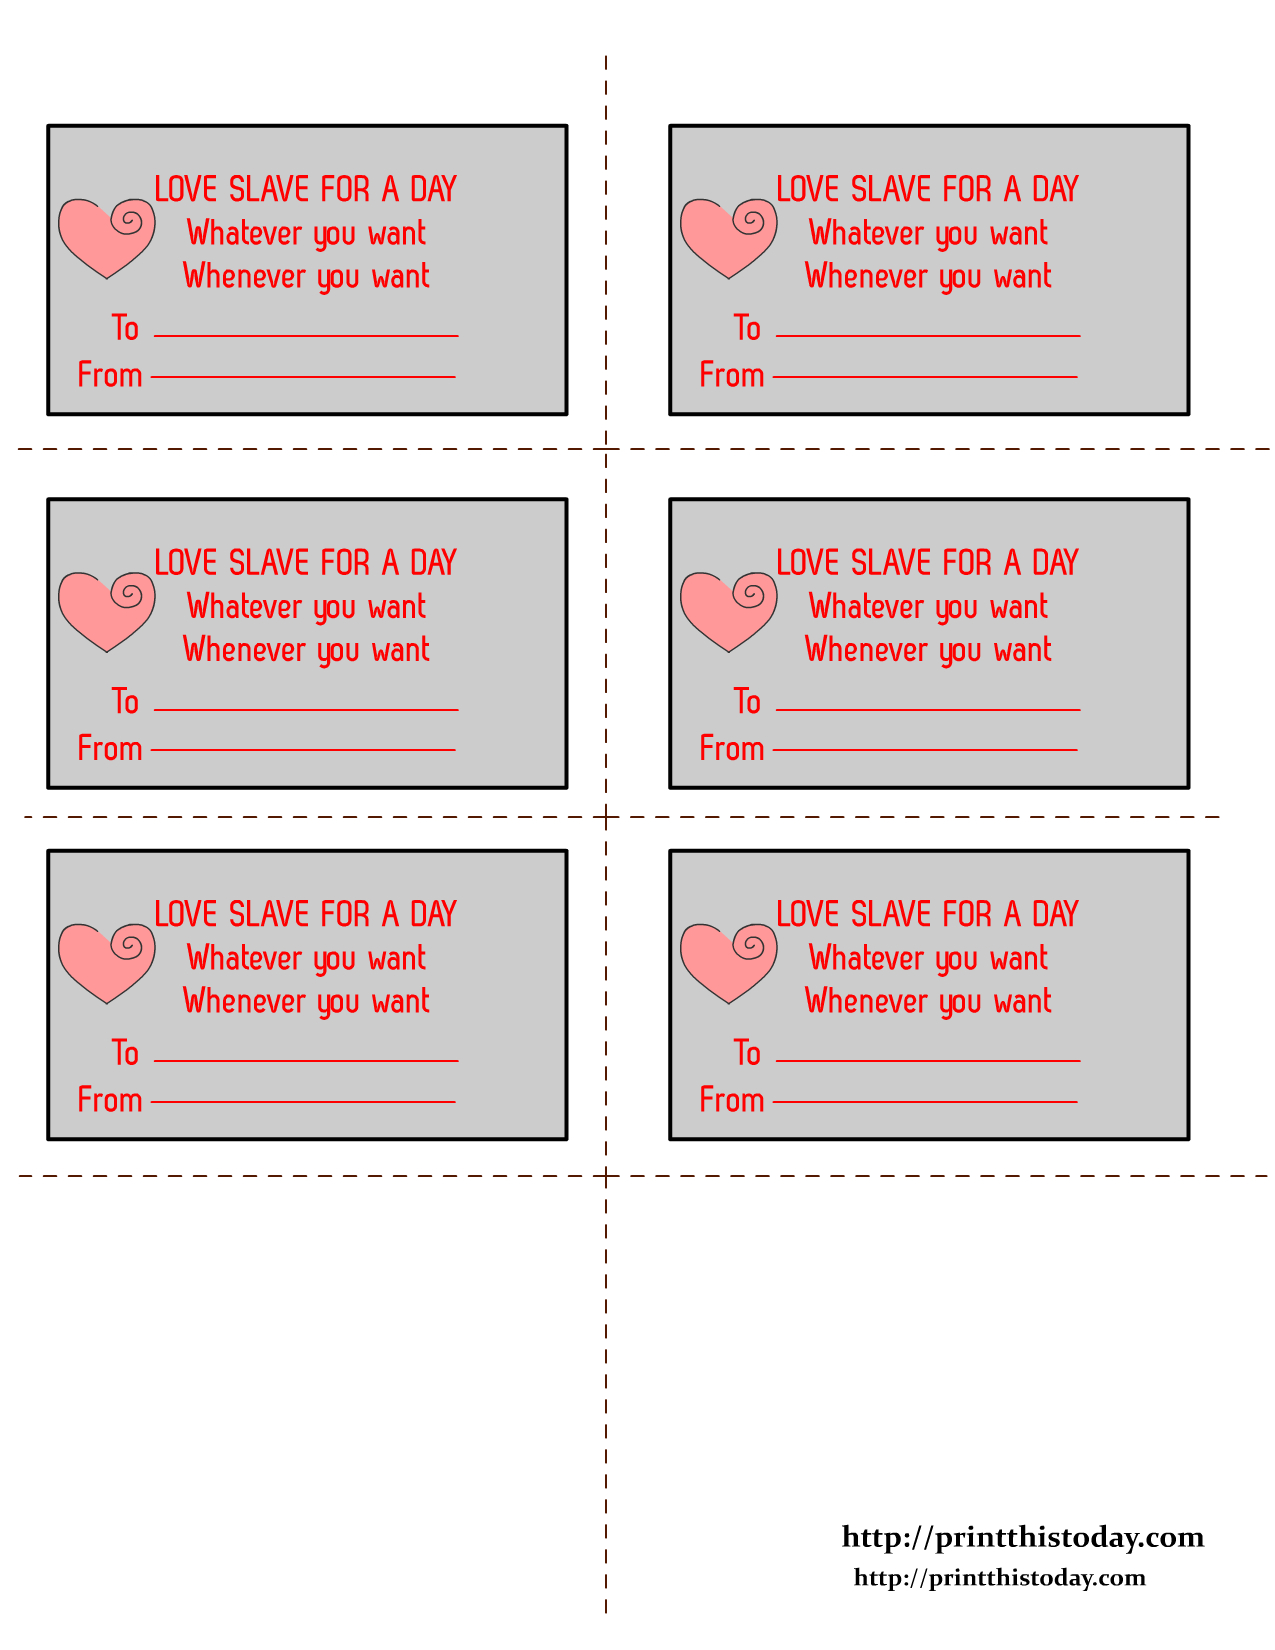 Free Printable Romantic Love Coupons - Free Printable Coupons For Husband